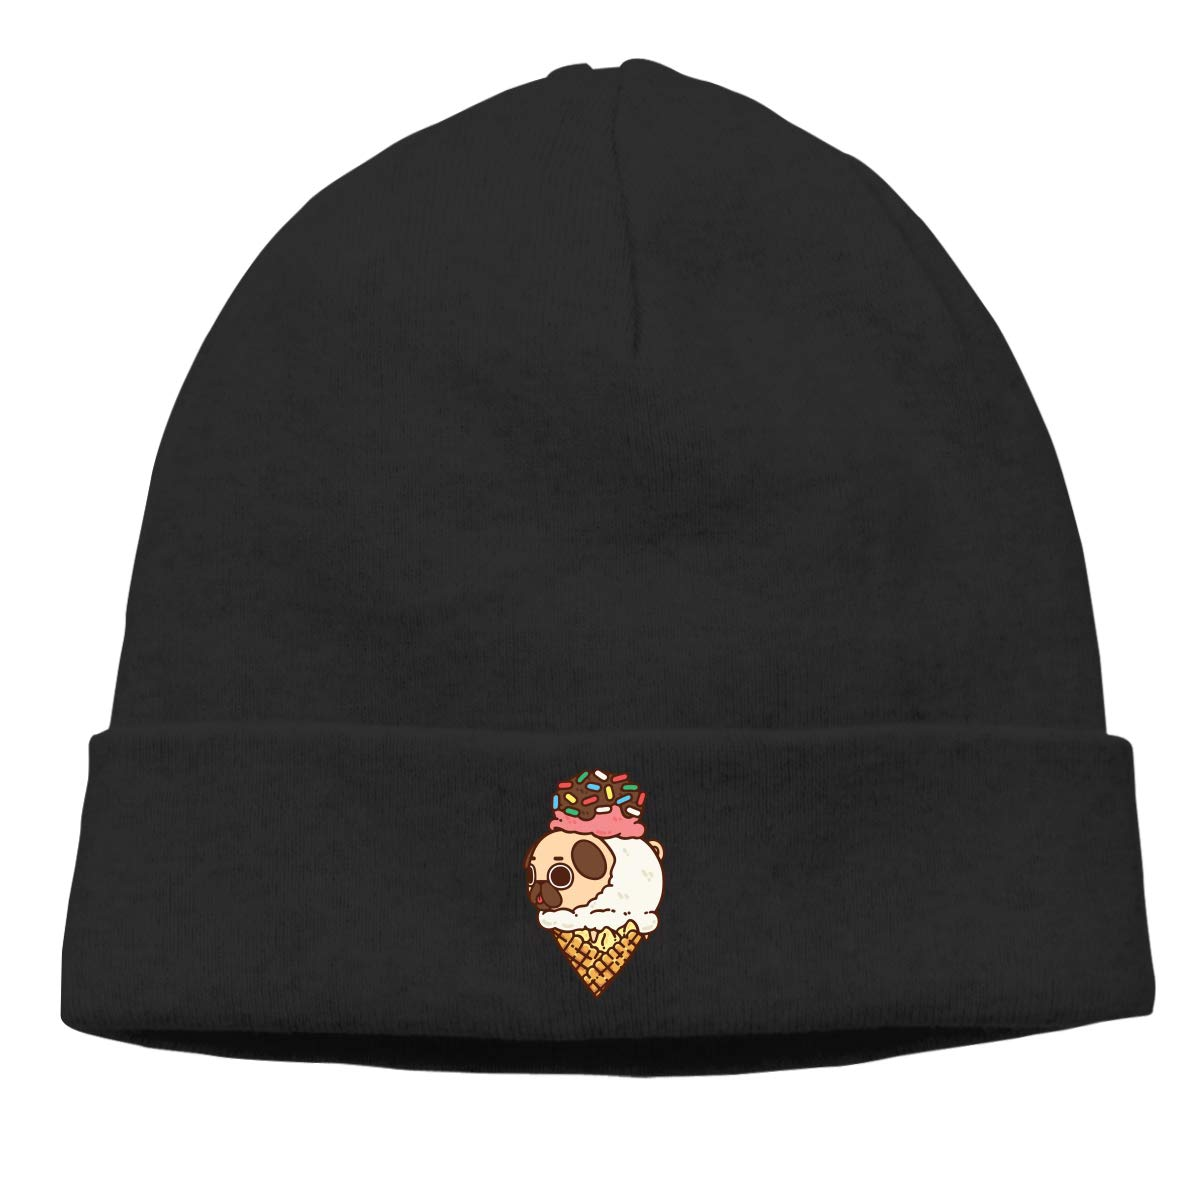 Pugs and Ice Cream Men Womens Solid Color Beanie Hat Stretchy /& Soft Winter Cap Thin